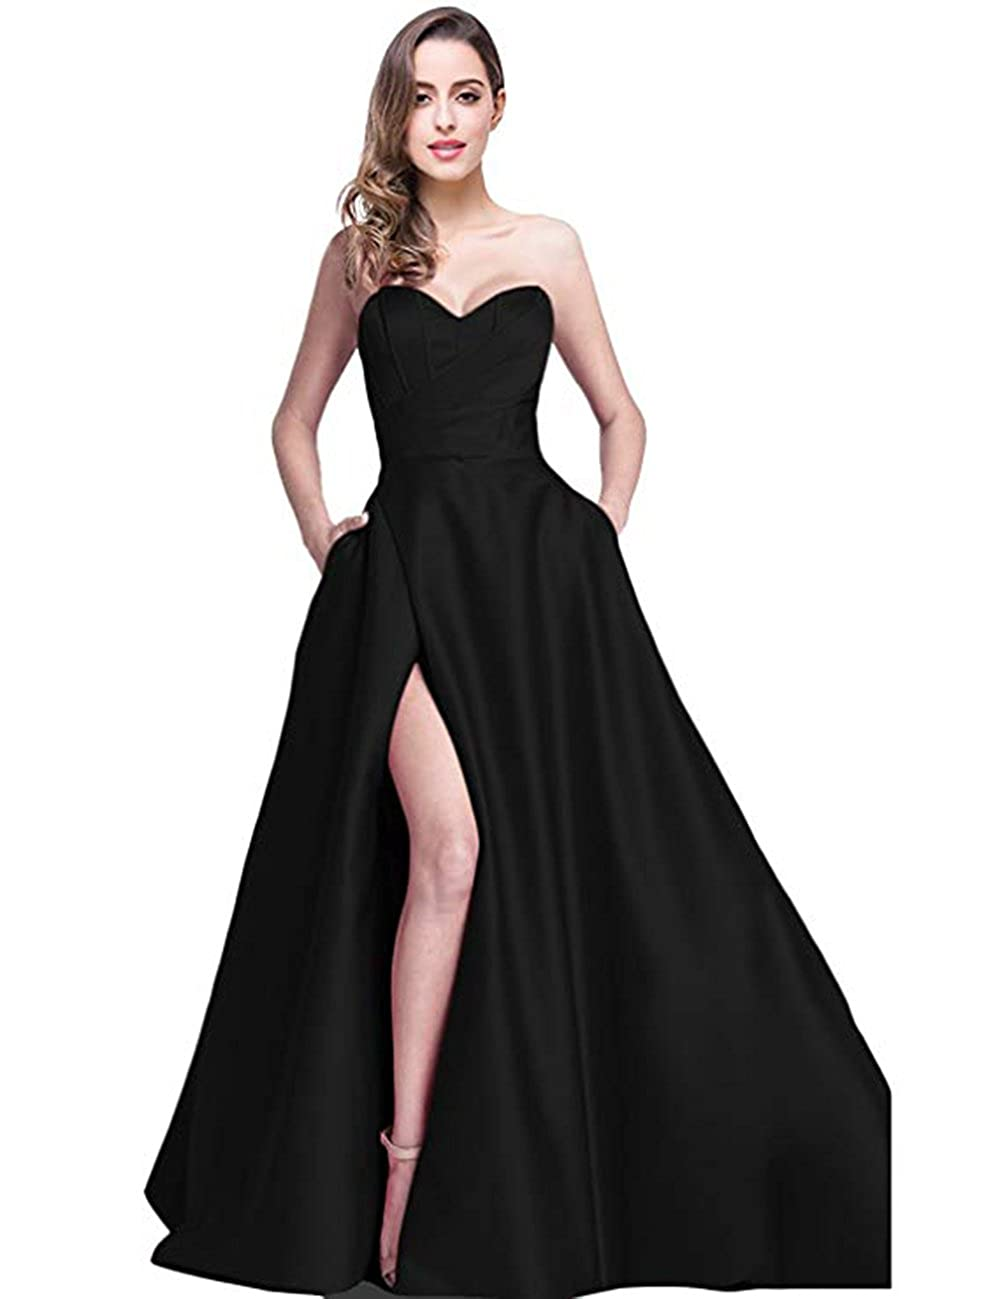 Ri Yun Women s Sweetheart Prom Dresses Long 2019 High Slit Strapless A-Line Formal  Evening Ball Gowns with Pockets at Amazon Women s Clothing store  13e9df51d1ed